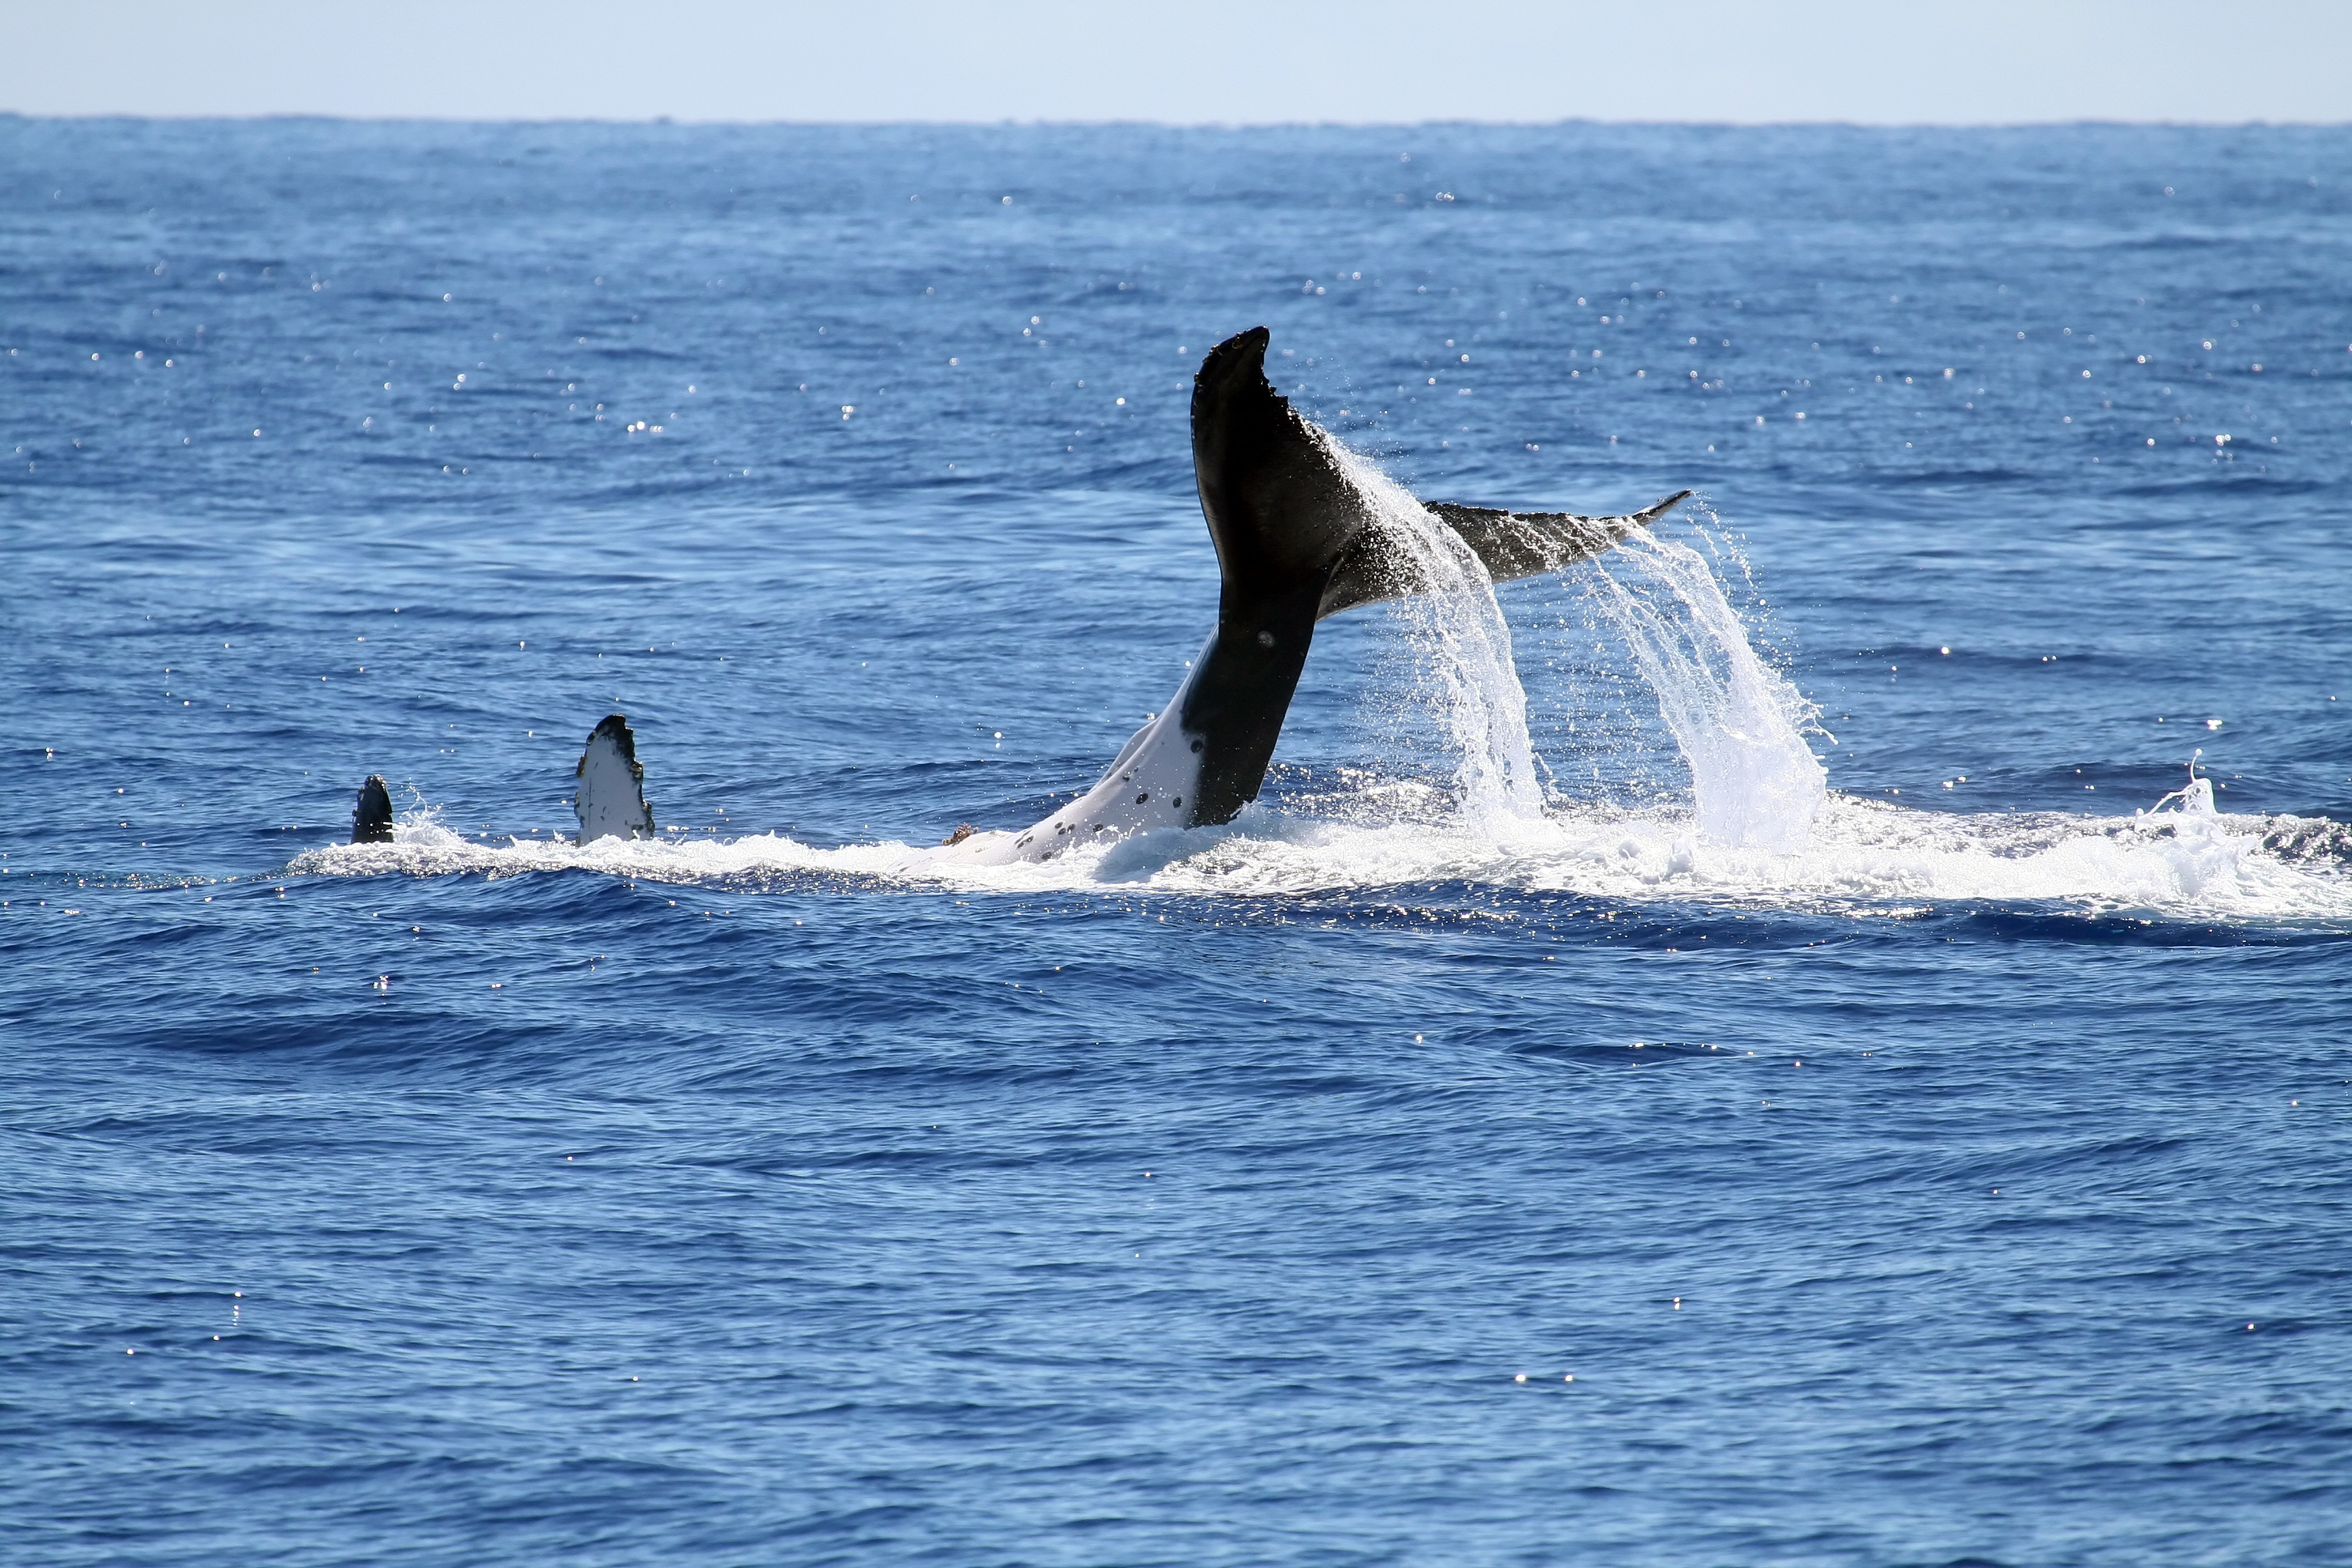 Whale playing on its back, with tail out of the water, up in the air